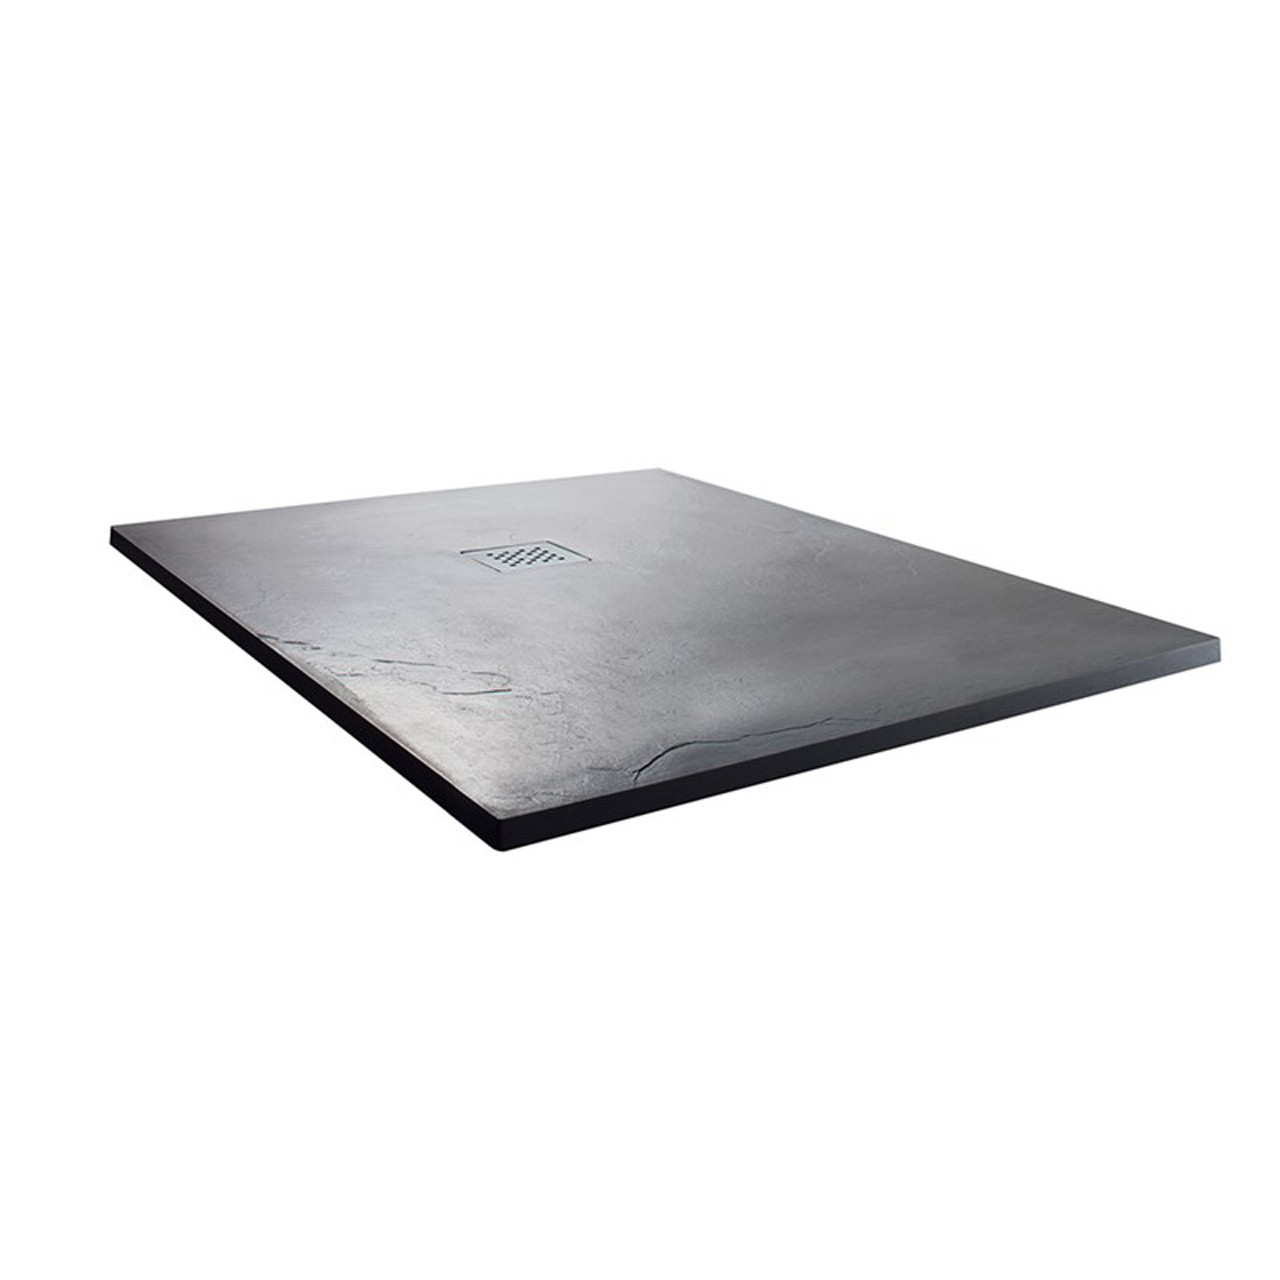 Wholestone Slate 900mm x 900mm Anthracite Square Shower Tray